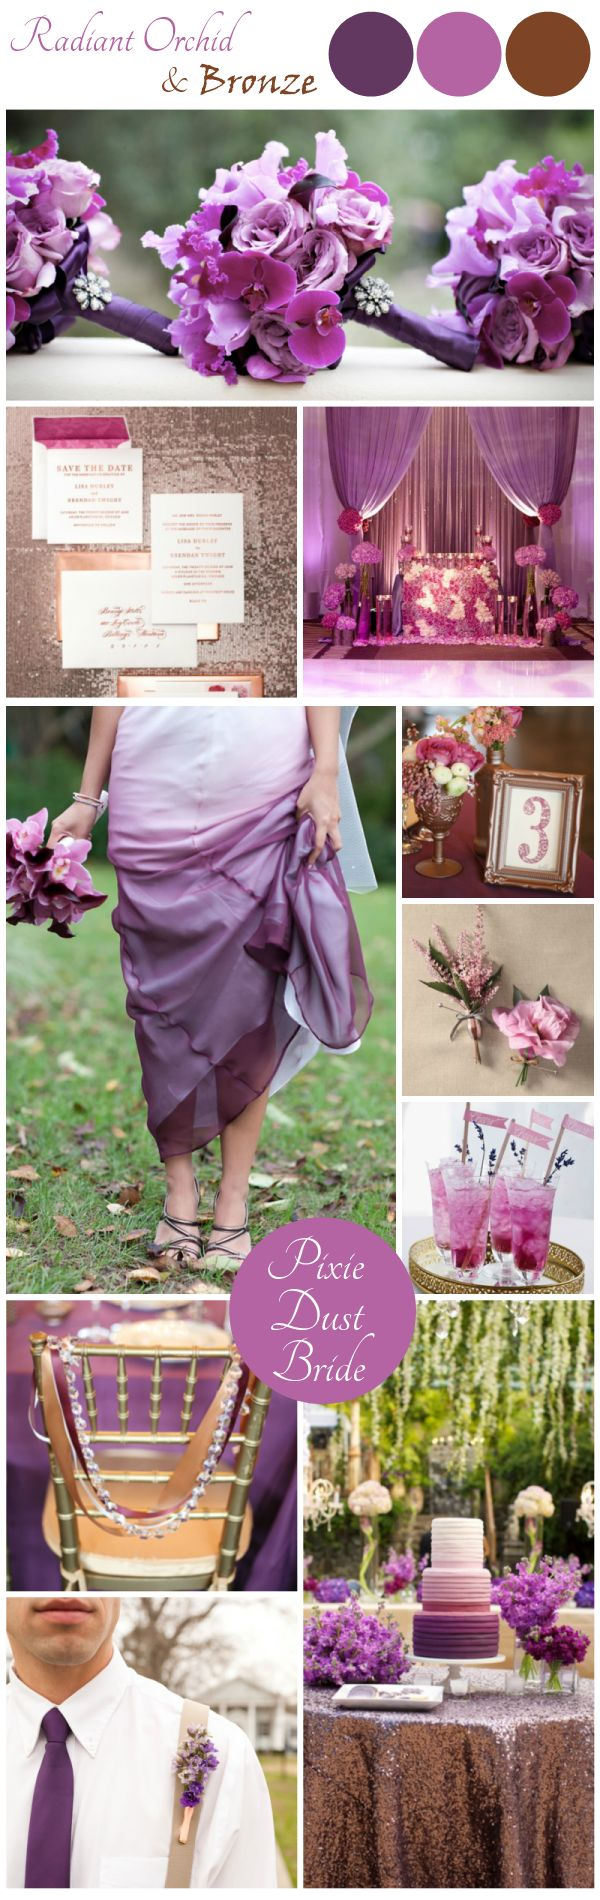 Bronze and Orchid Wedding Inspiration Board - Pixie Dust Bride